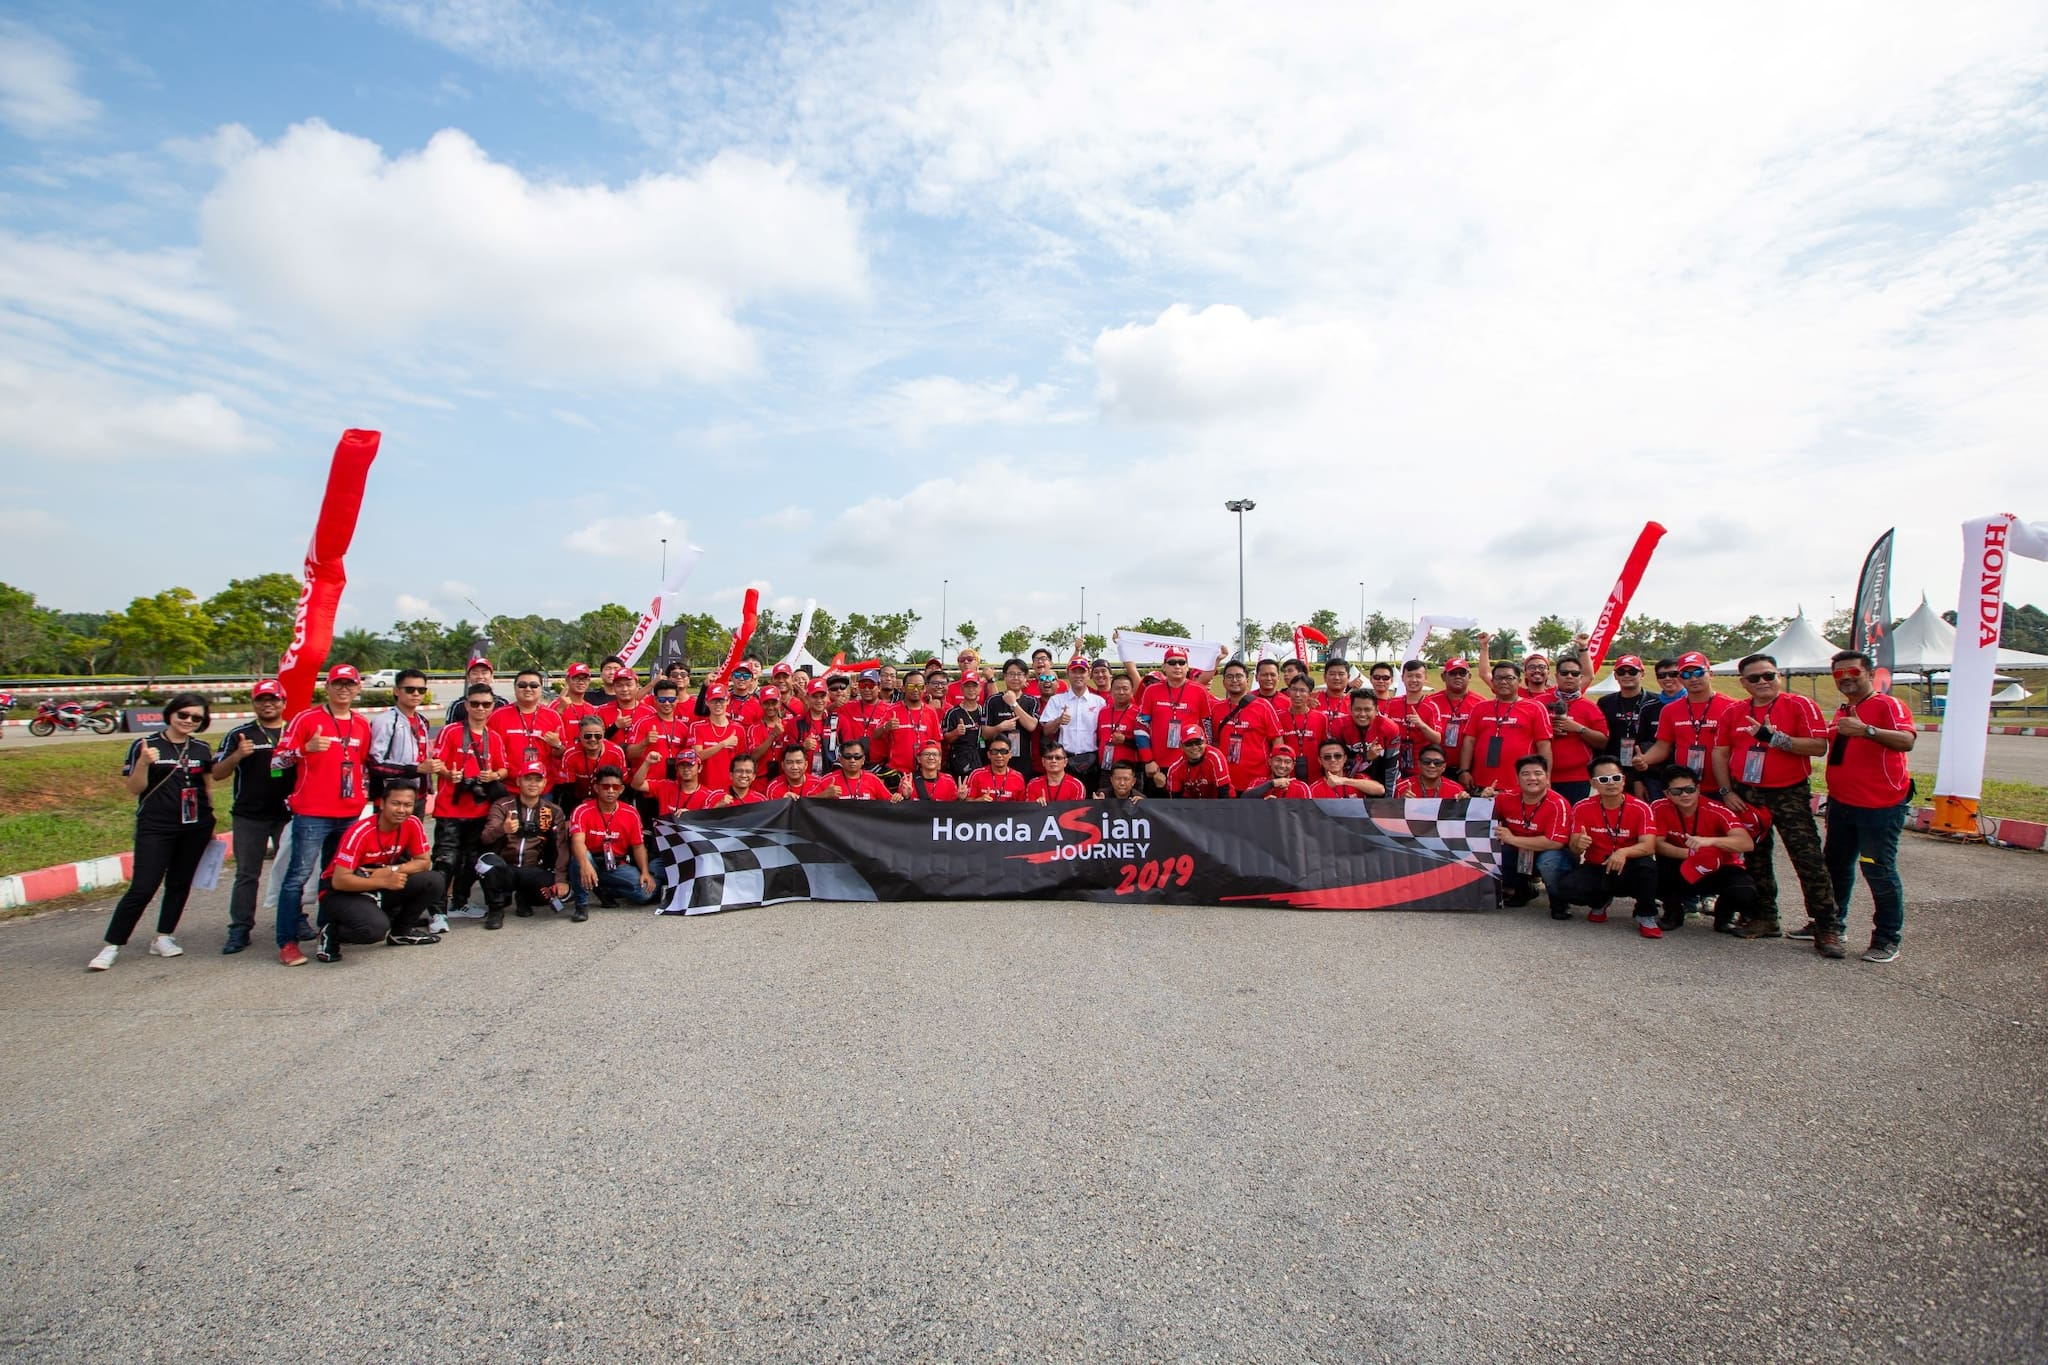 Honda Kicks Off 'Honda Asian Journey 2019', a Big Bike Cruise Through Malaysia to the MotoGP Race